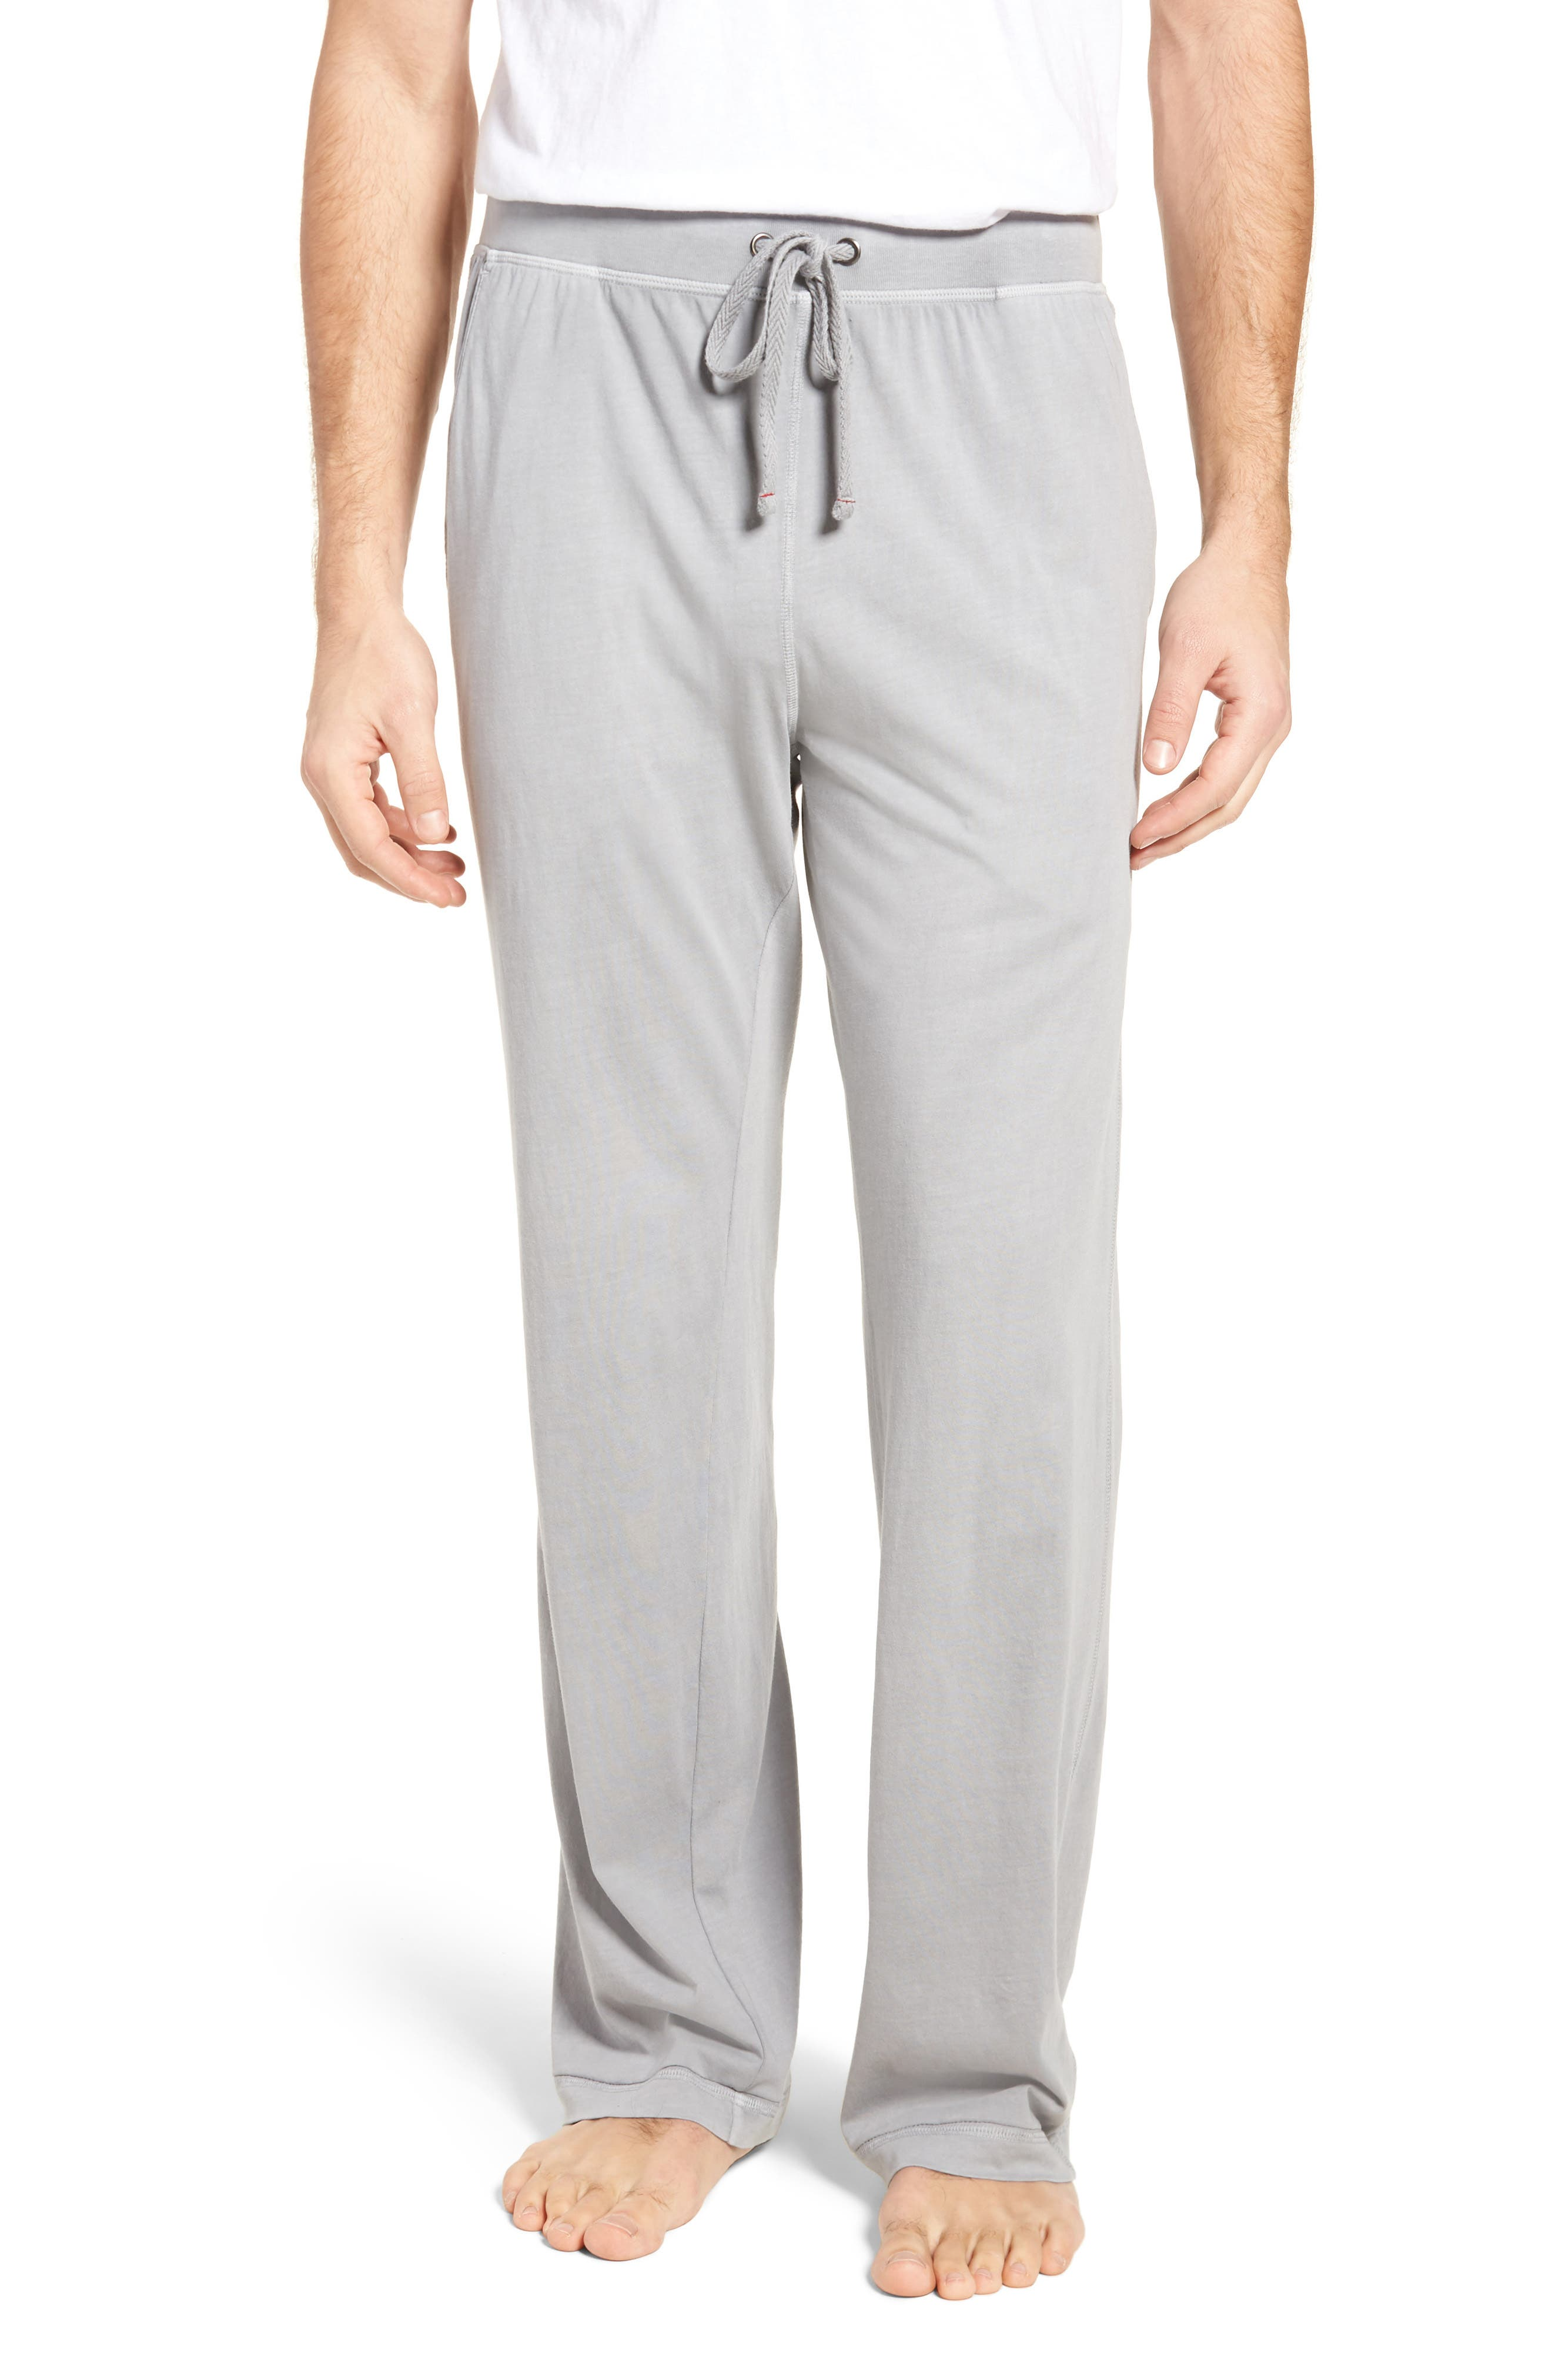 Daniel Buchler Peruvian Pima Cotton Lounge Pants